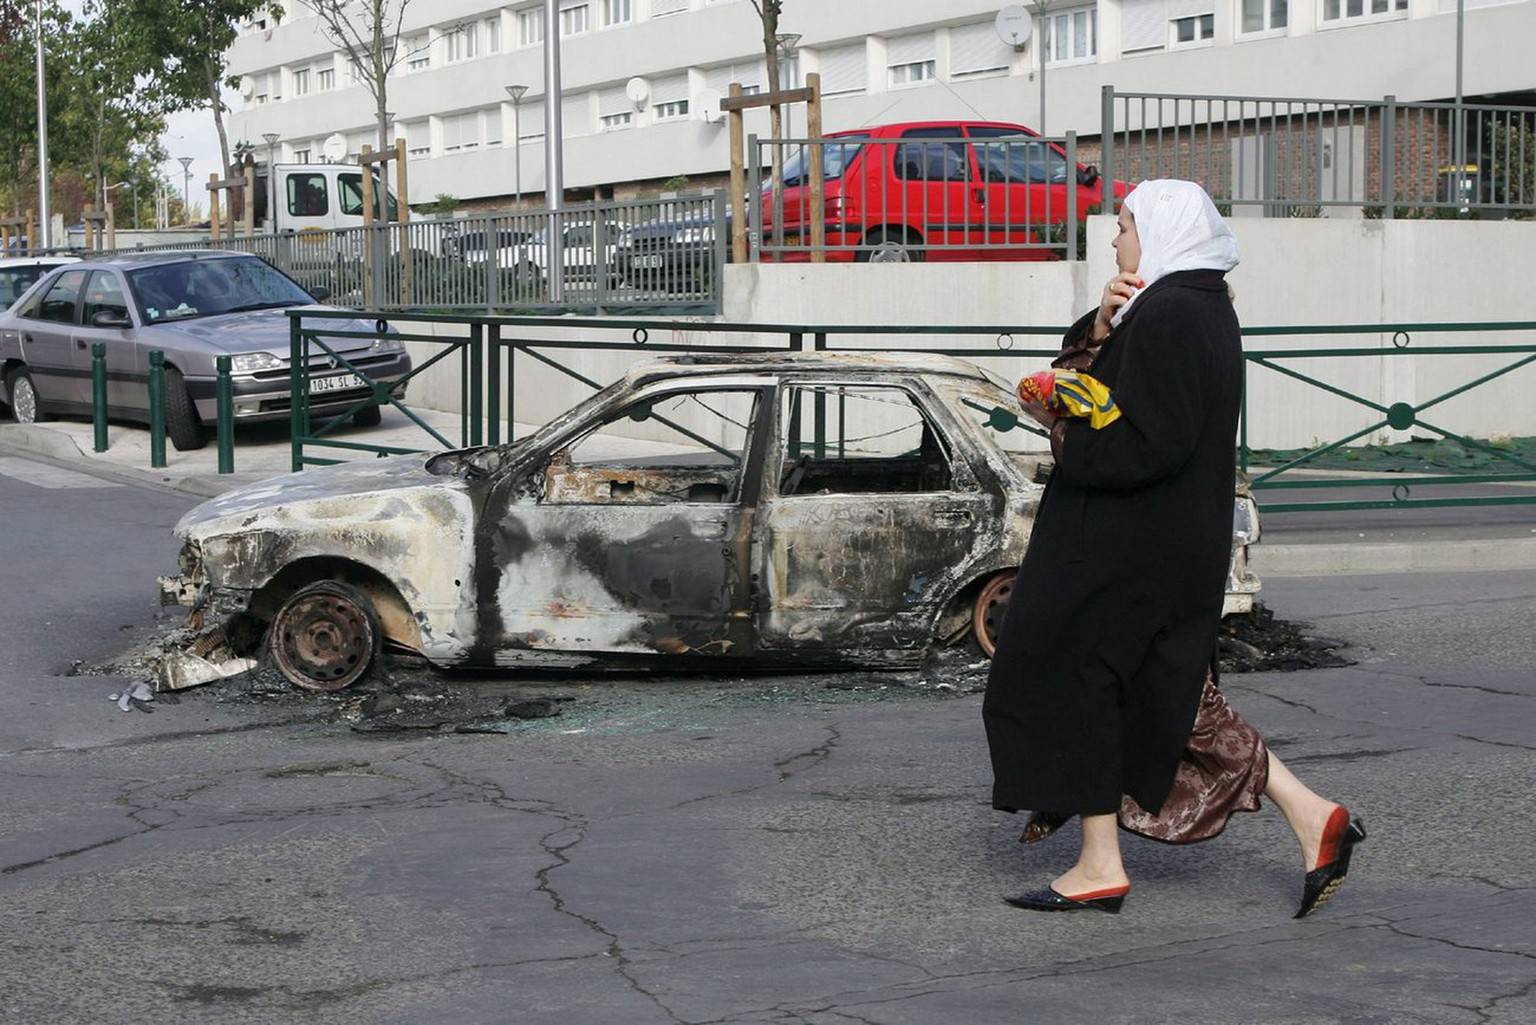 A resident walks past the remains of a car which was set on fire overnight in the north eastern Paris suburb of Aulnay sous Bois, Thursday 03 November 2005. French Prime Minister Dominique de Villepin said Thursday a return of order was his government's priority after a seventh consecutive night of rioting in the ghettoes of suburban Paris.  EPA/TRAVERS / LE FLOCH FRANCE OUT *** Local Caption *** 518930